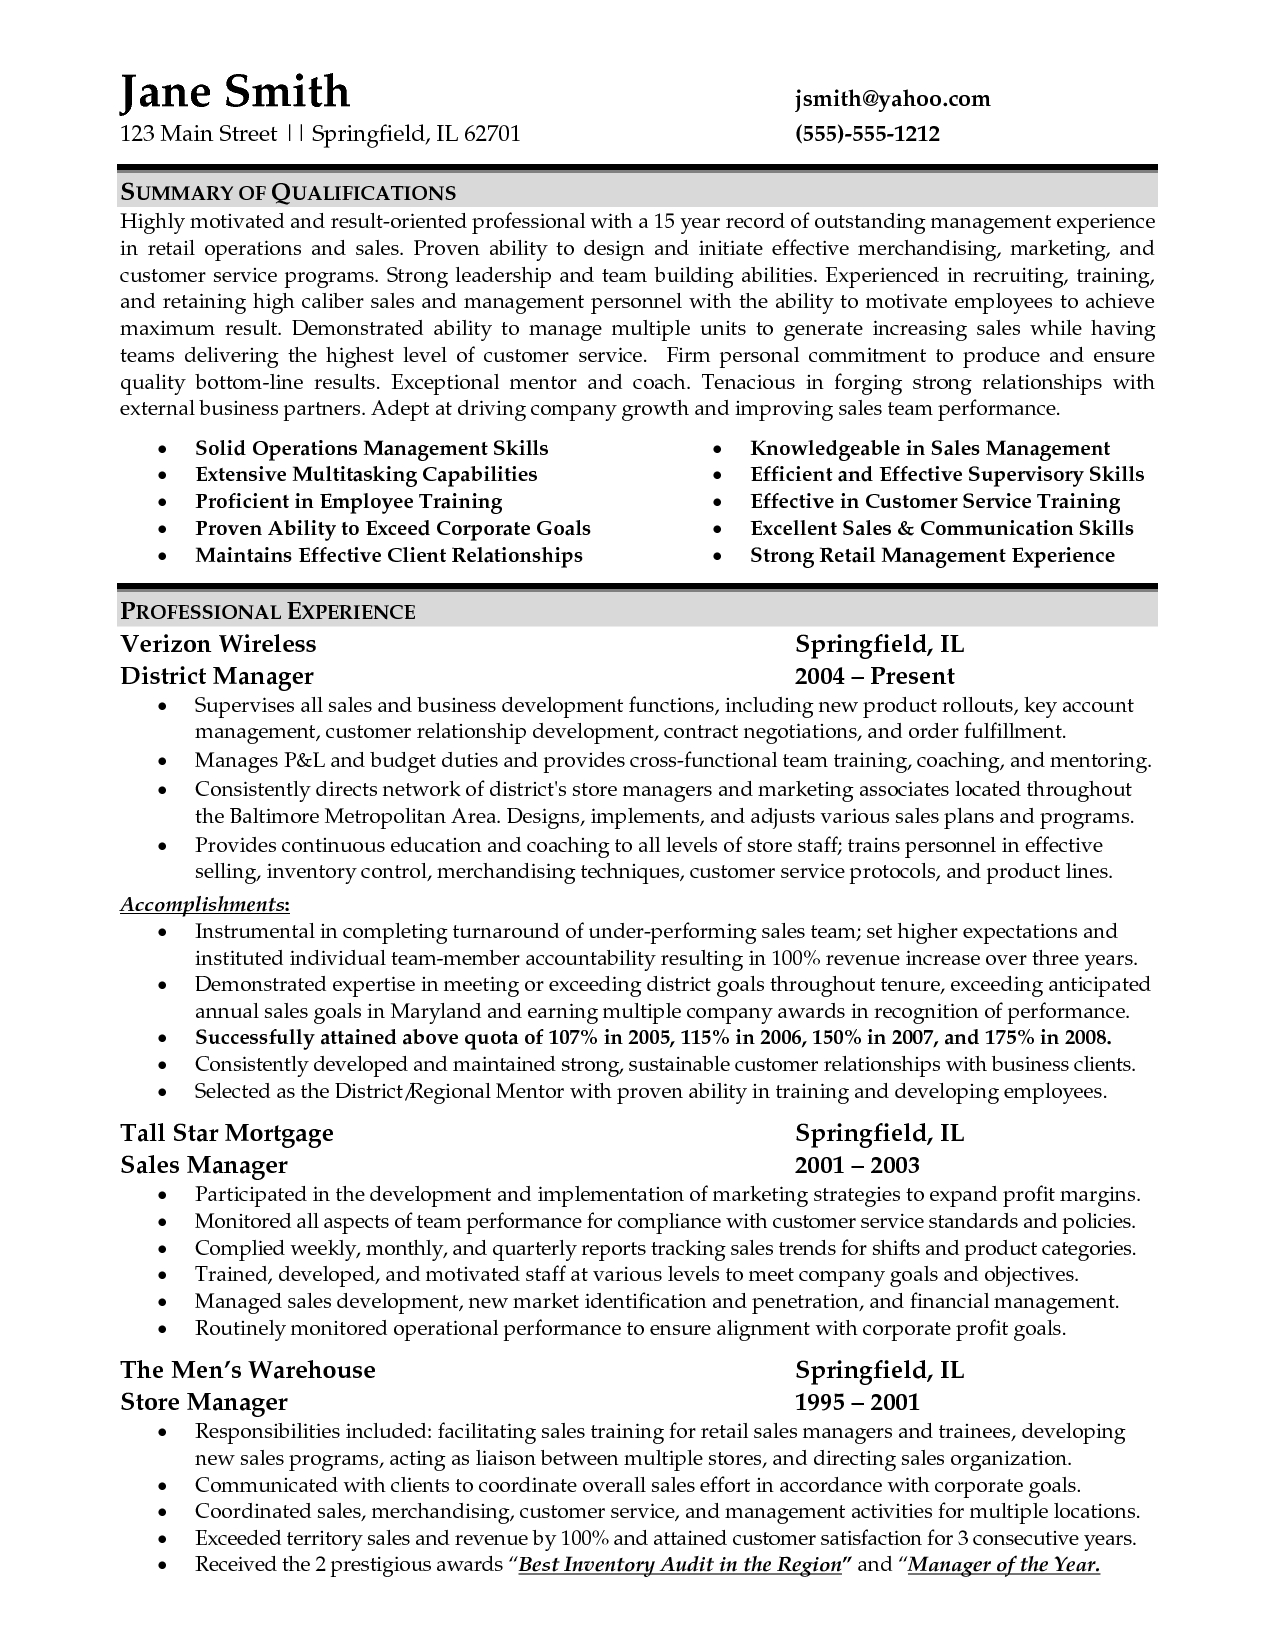 warehouse manager cover letter template example-sample resume for retail management job 17-p